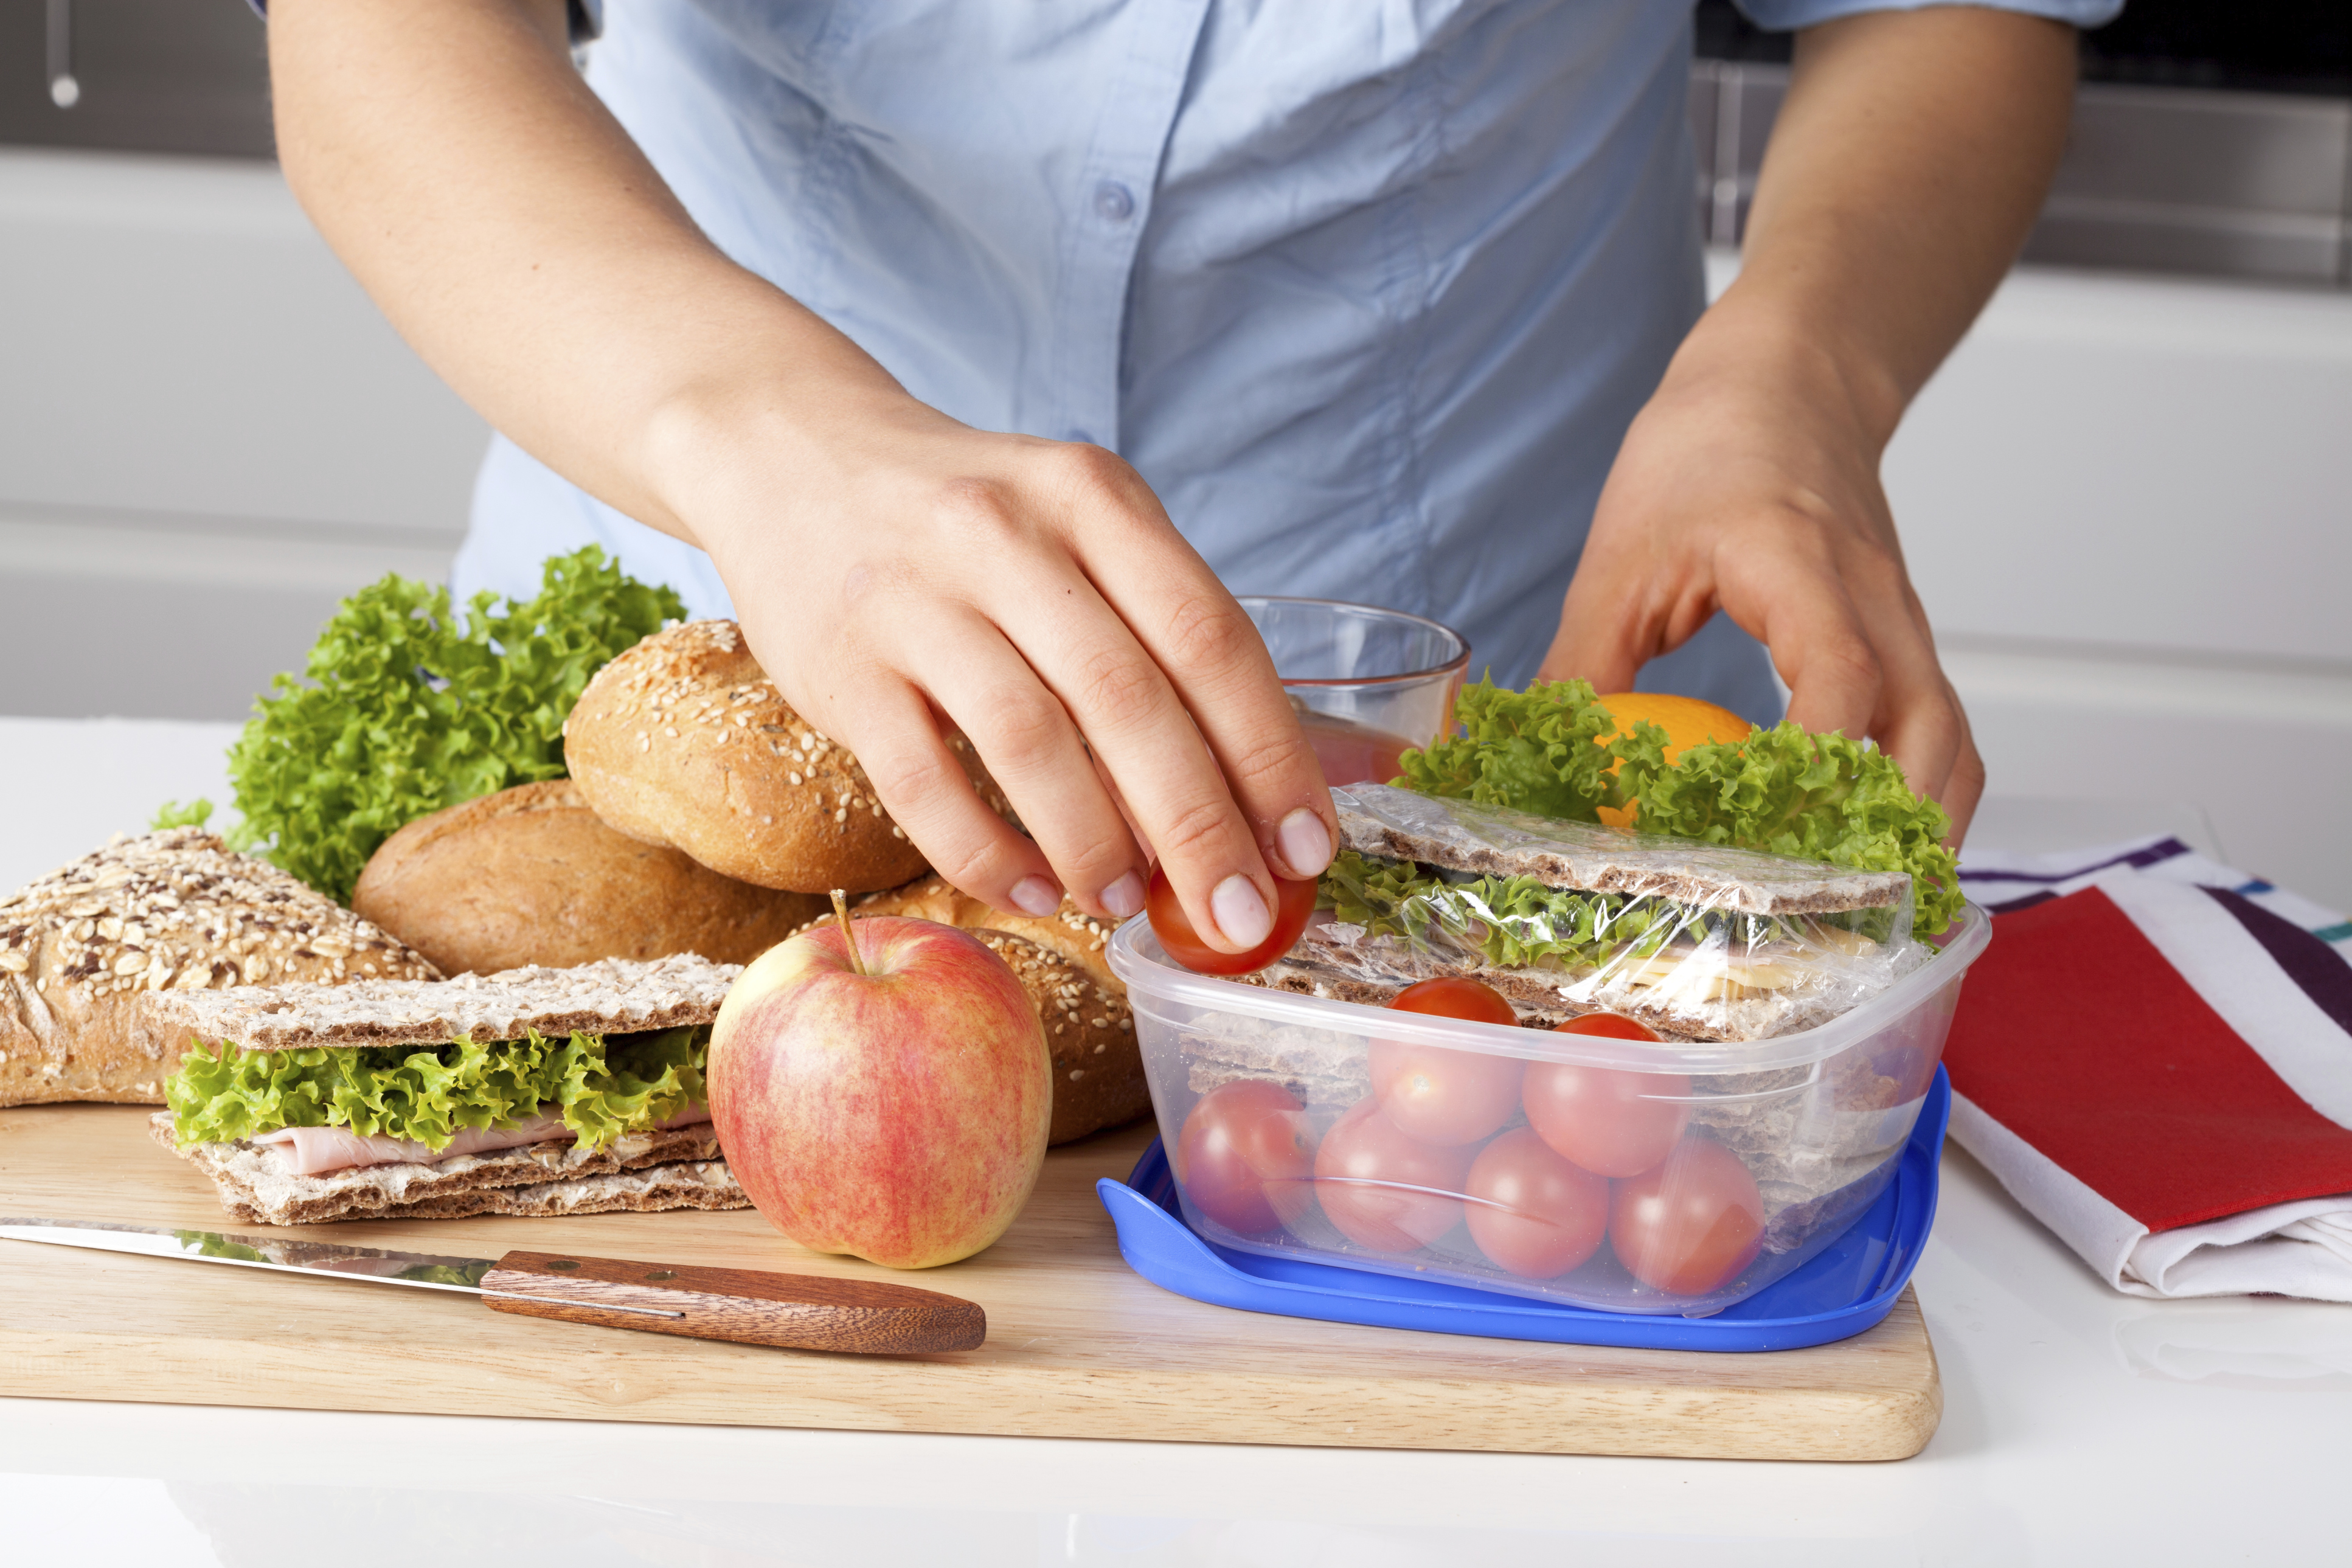 Tips for making healthy school lunches